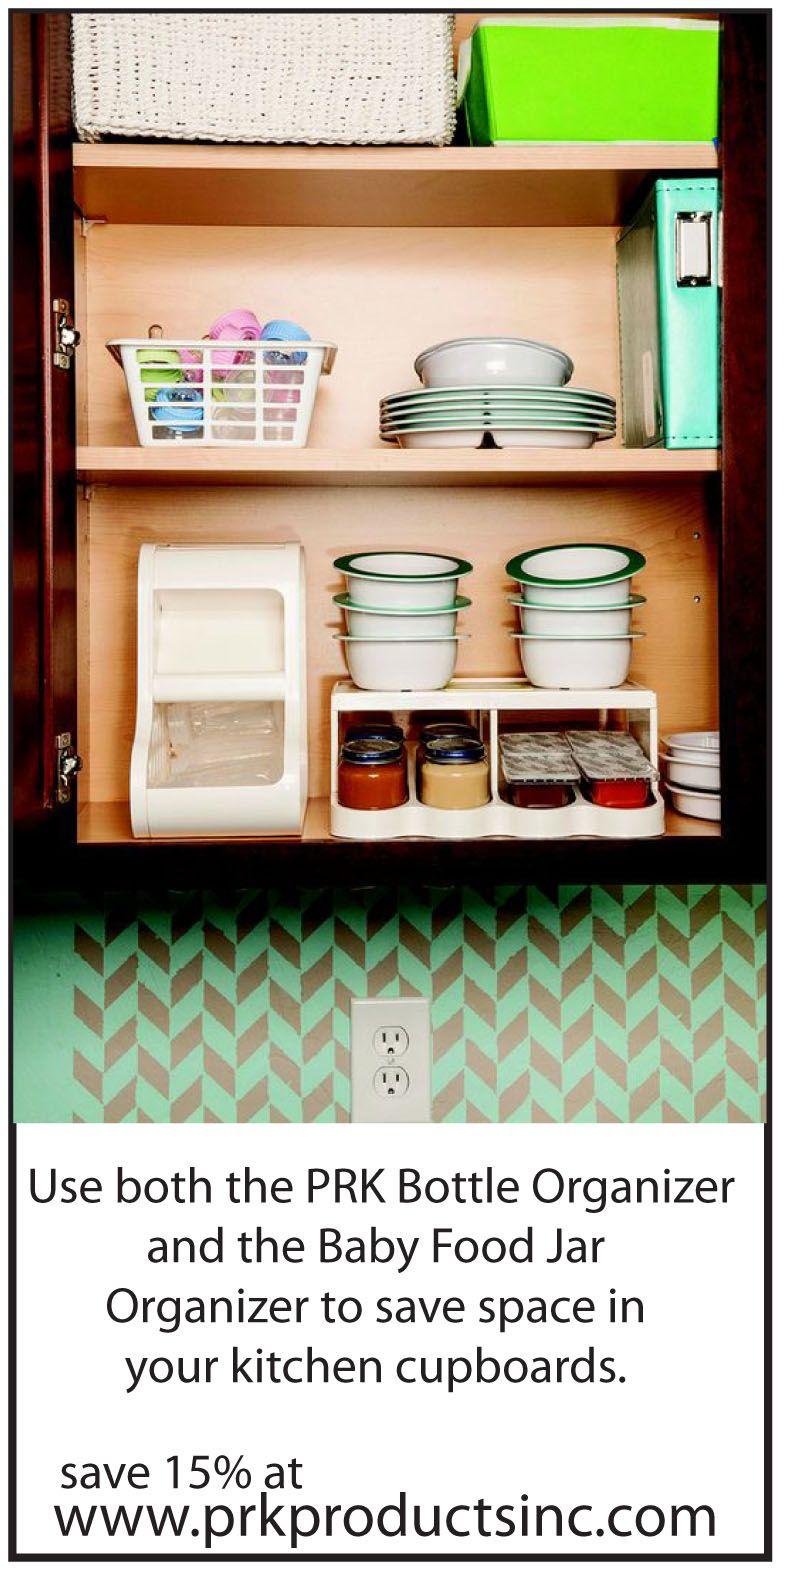 Save room in your small kitchen by storing all your baby bottles and food in one place. Save 15% off your order with code pin15 at www.prkproductsinc.com